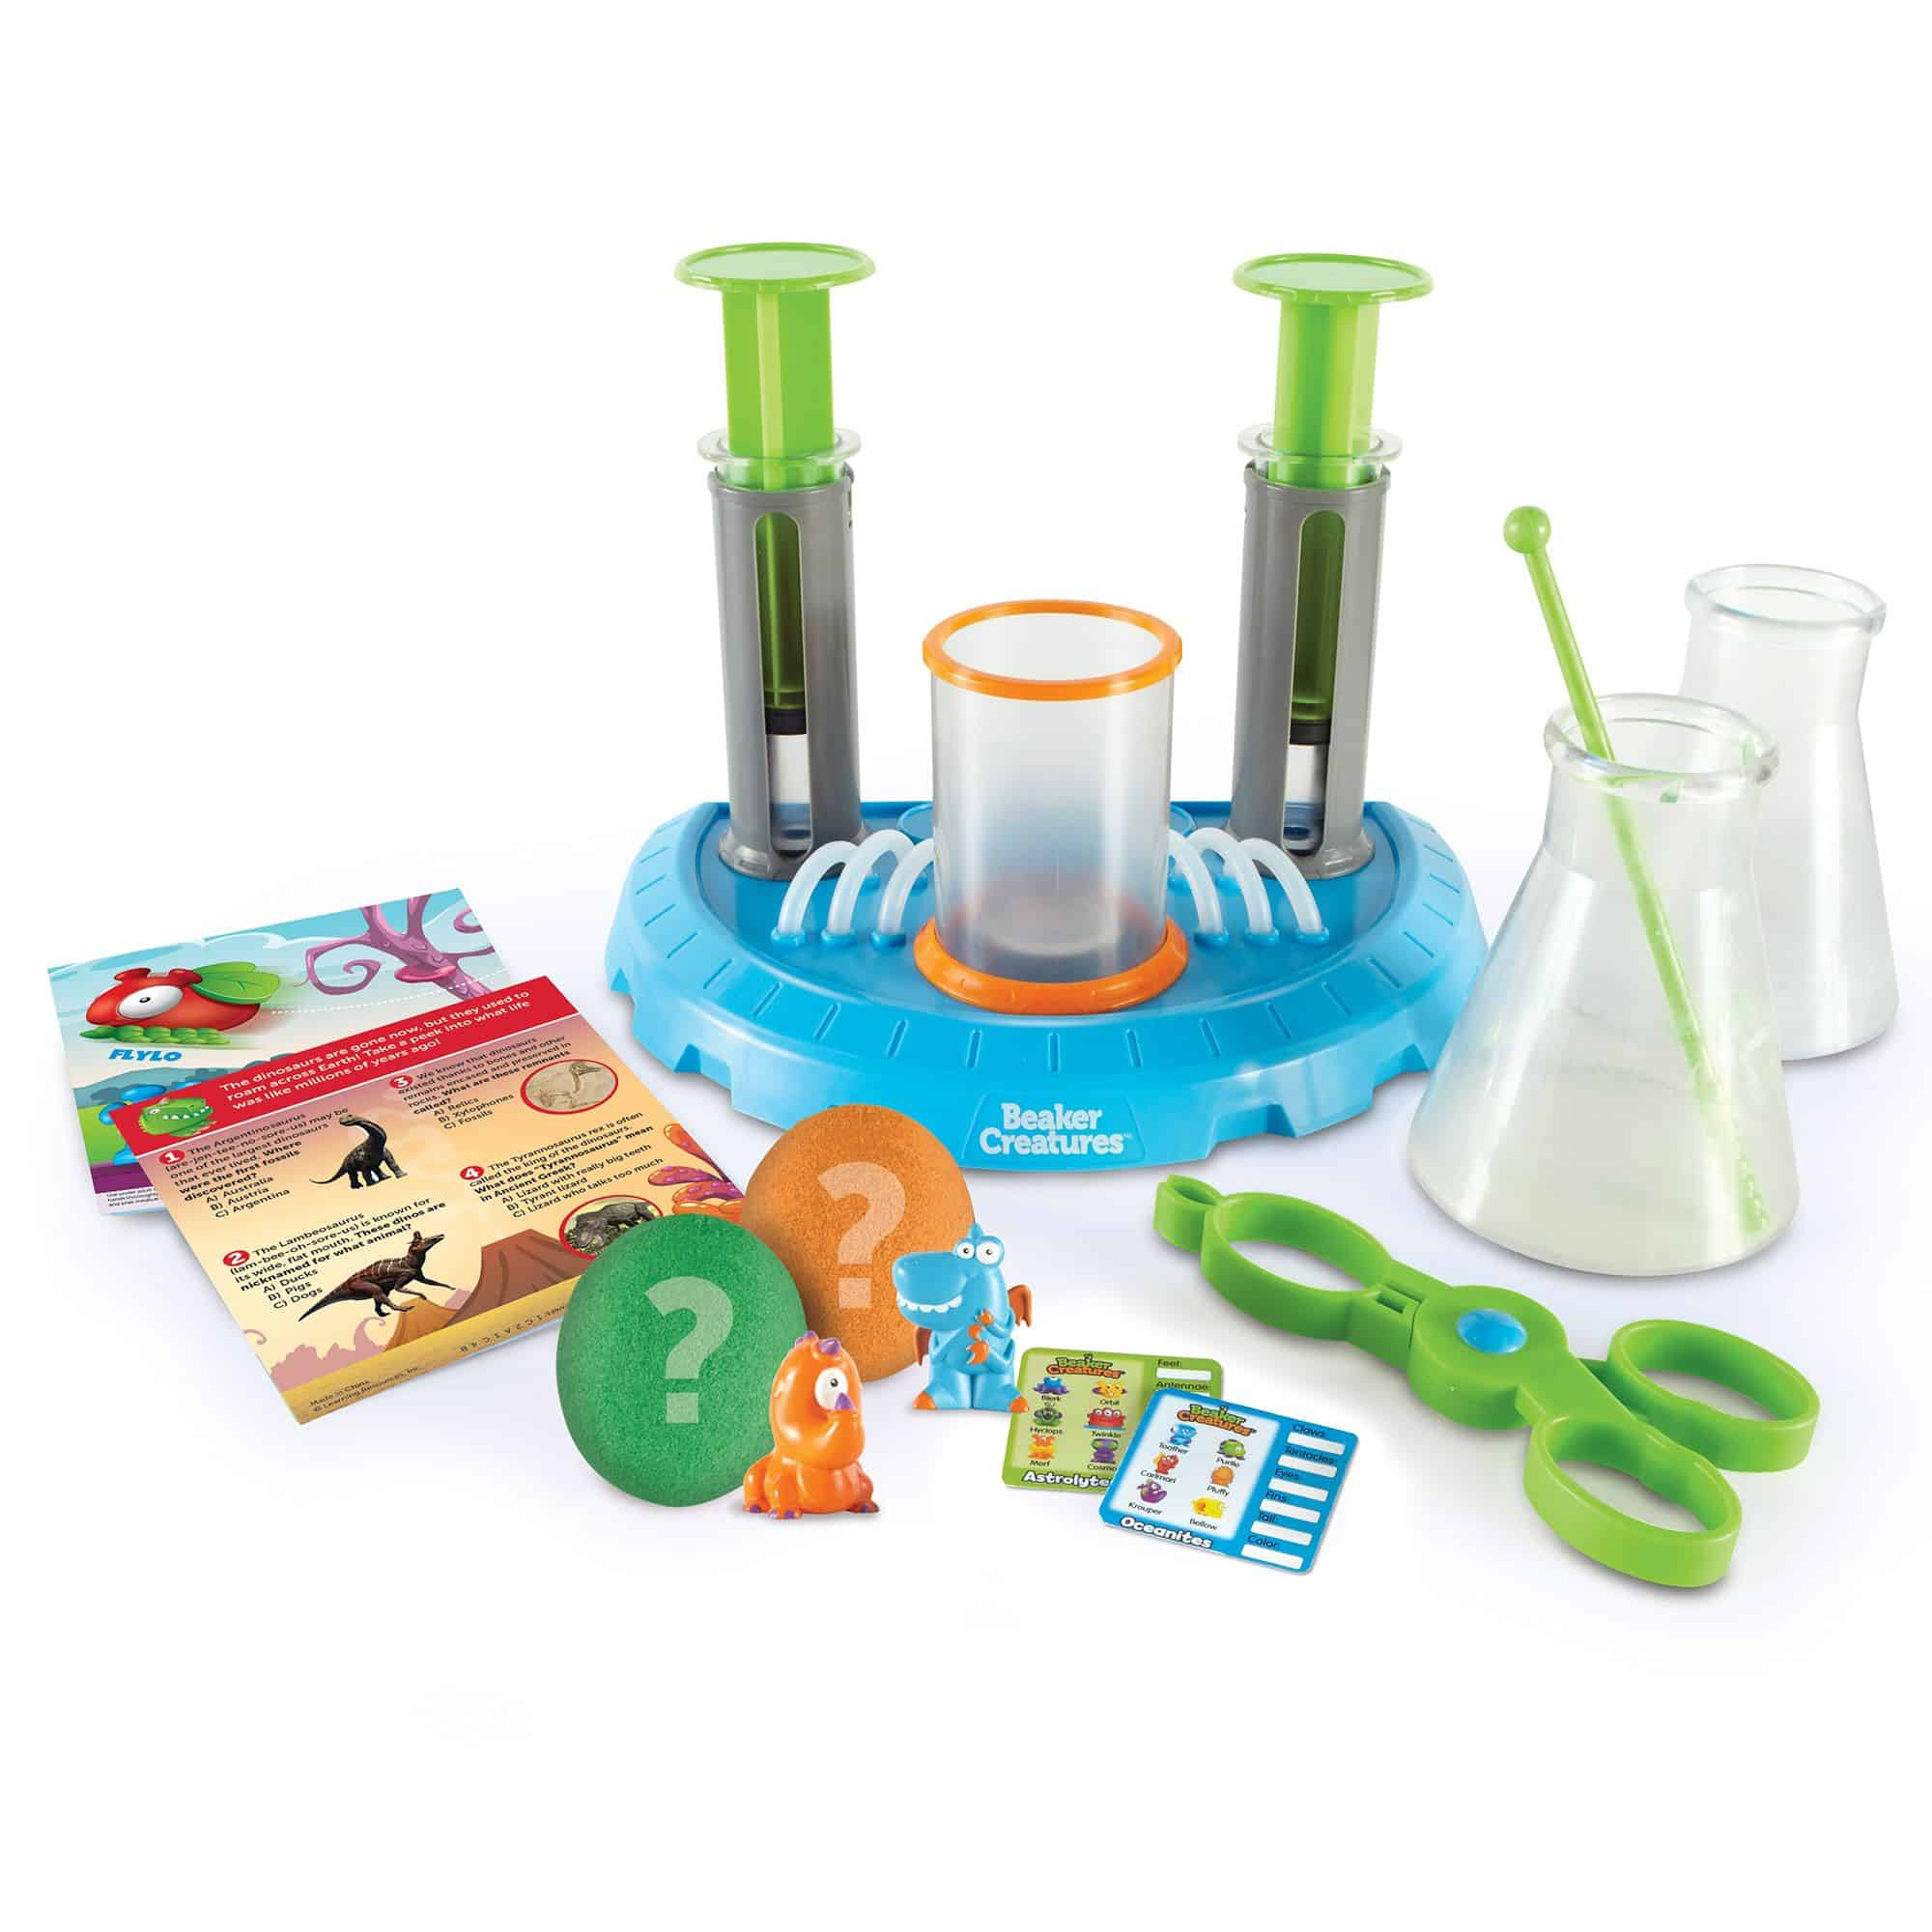 Toy chemistry set for kids